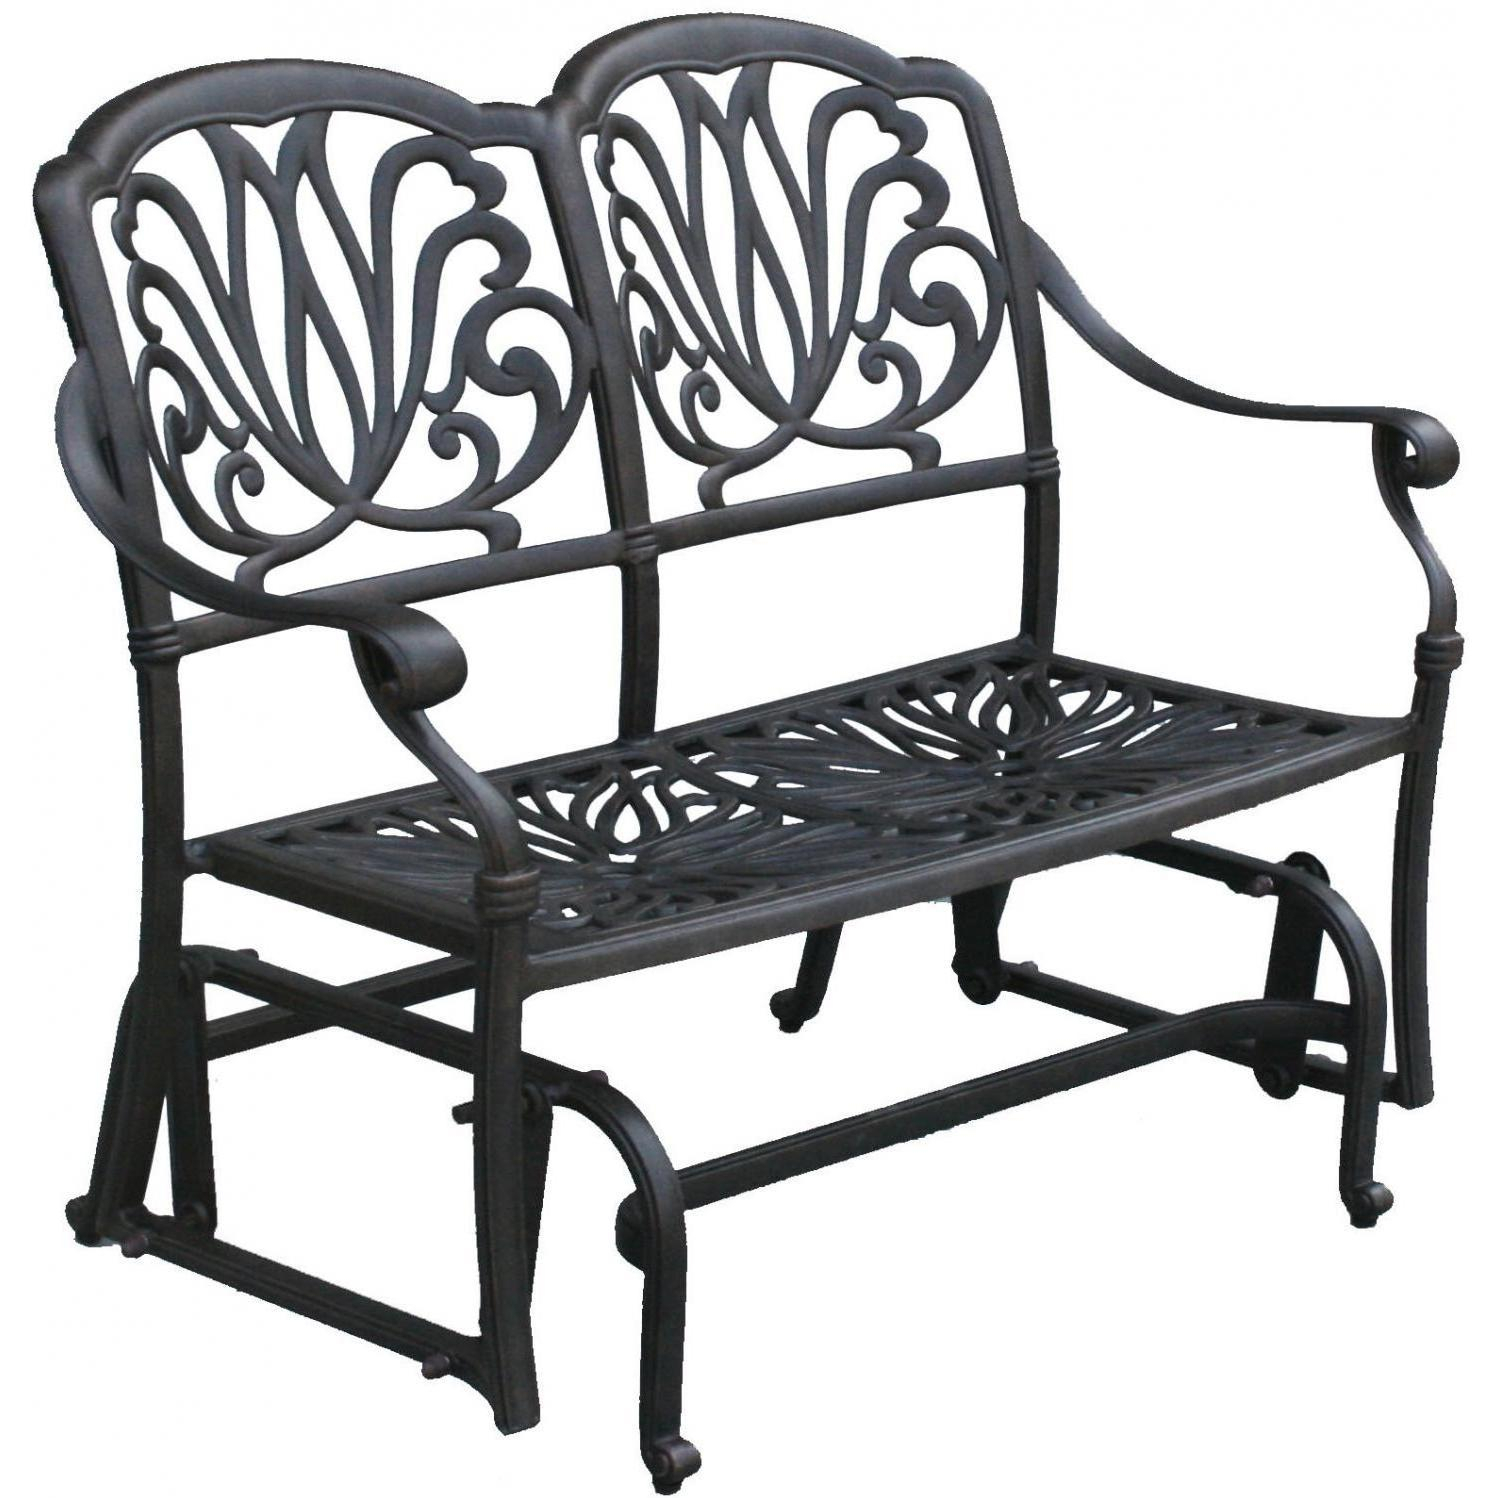 Darlee Elisabeth Cast Aluminum Patio Bench Glider | Products Within Glider Benches With Cushion (Image 7 of 25)